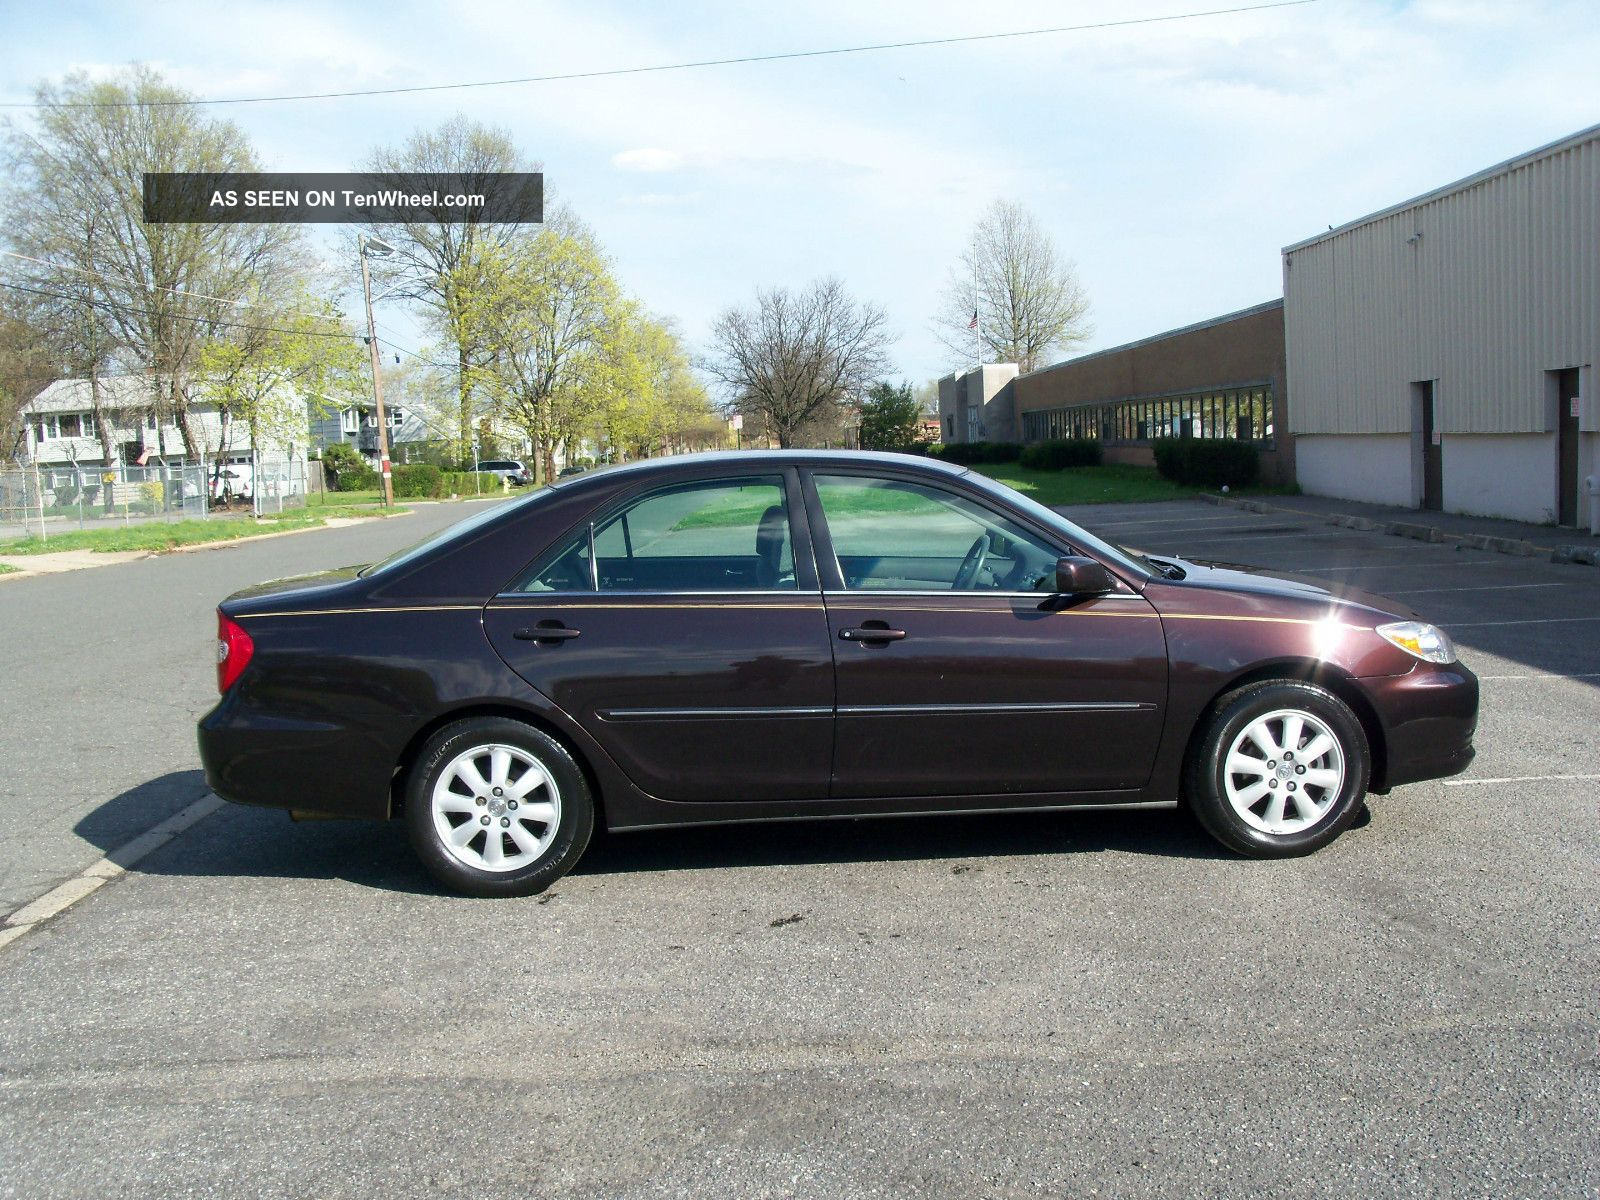 2002 toyota camry xle loaded and serviced. Black Bedroom Furniture Sets. Home Design Ideas